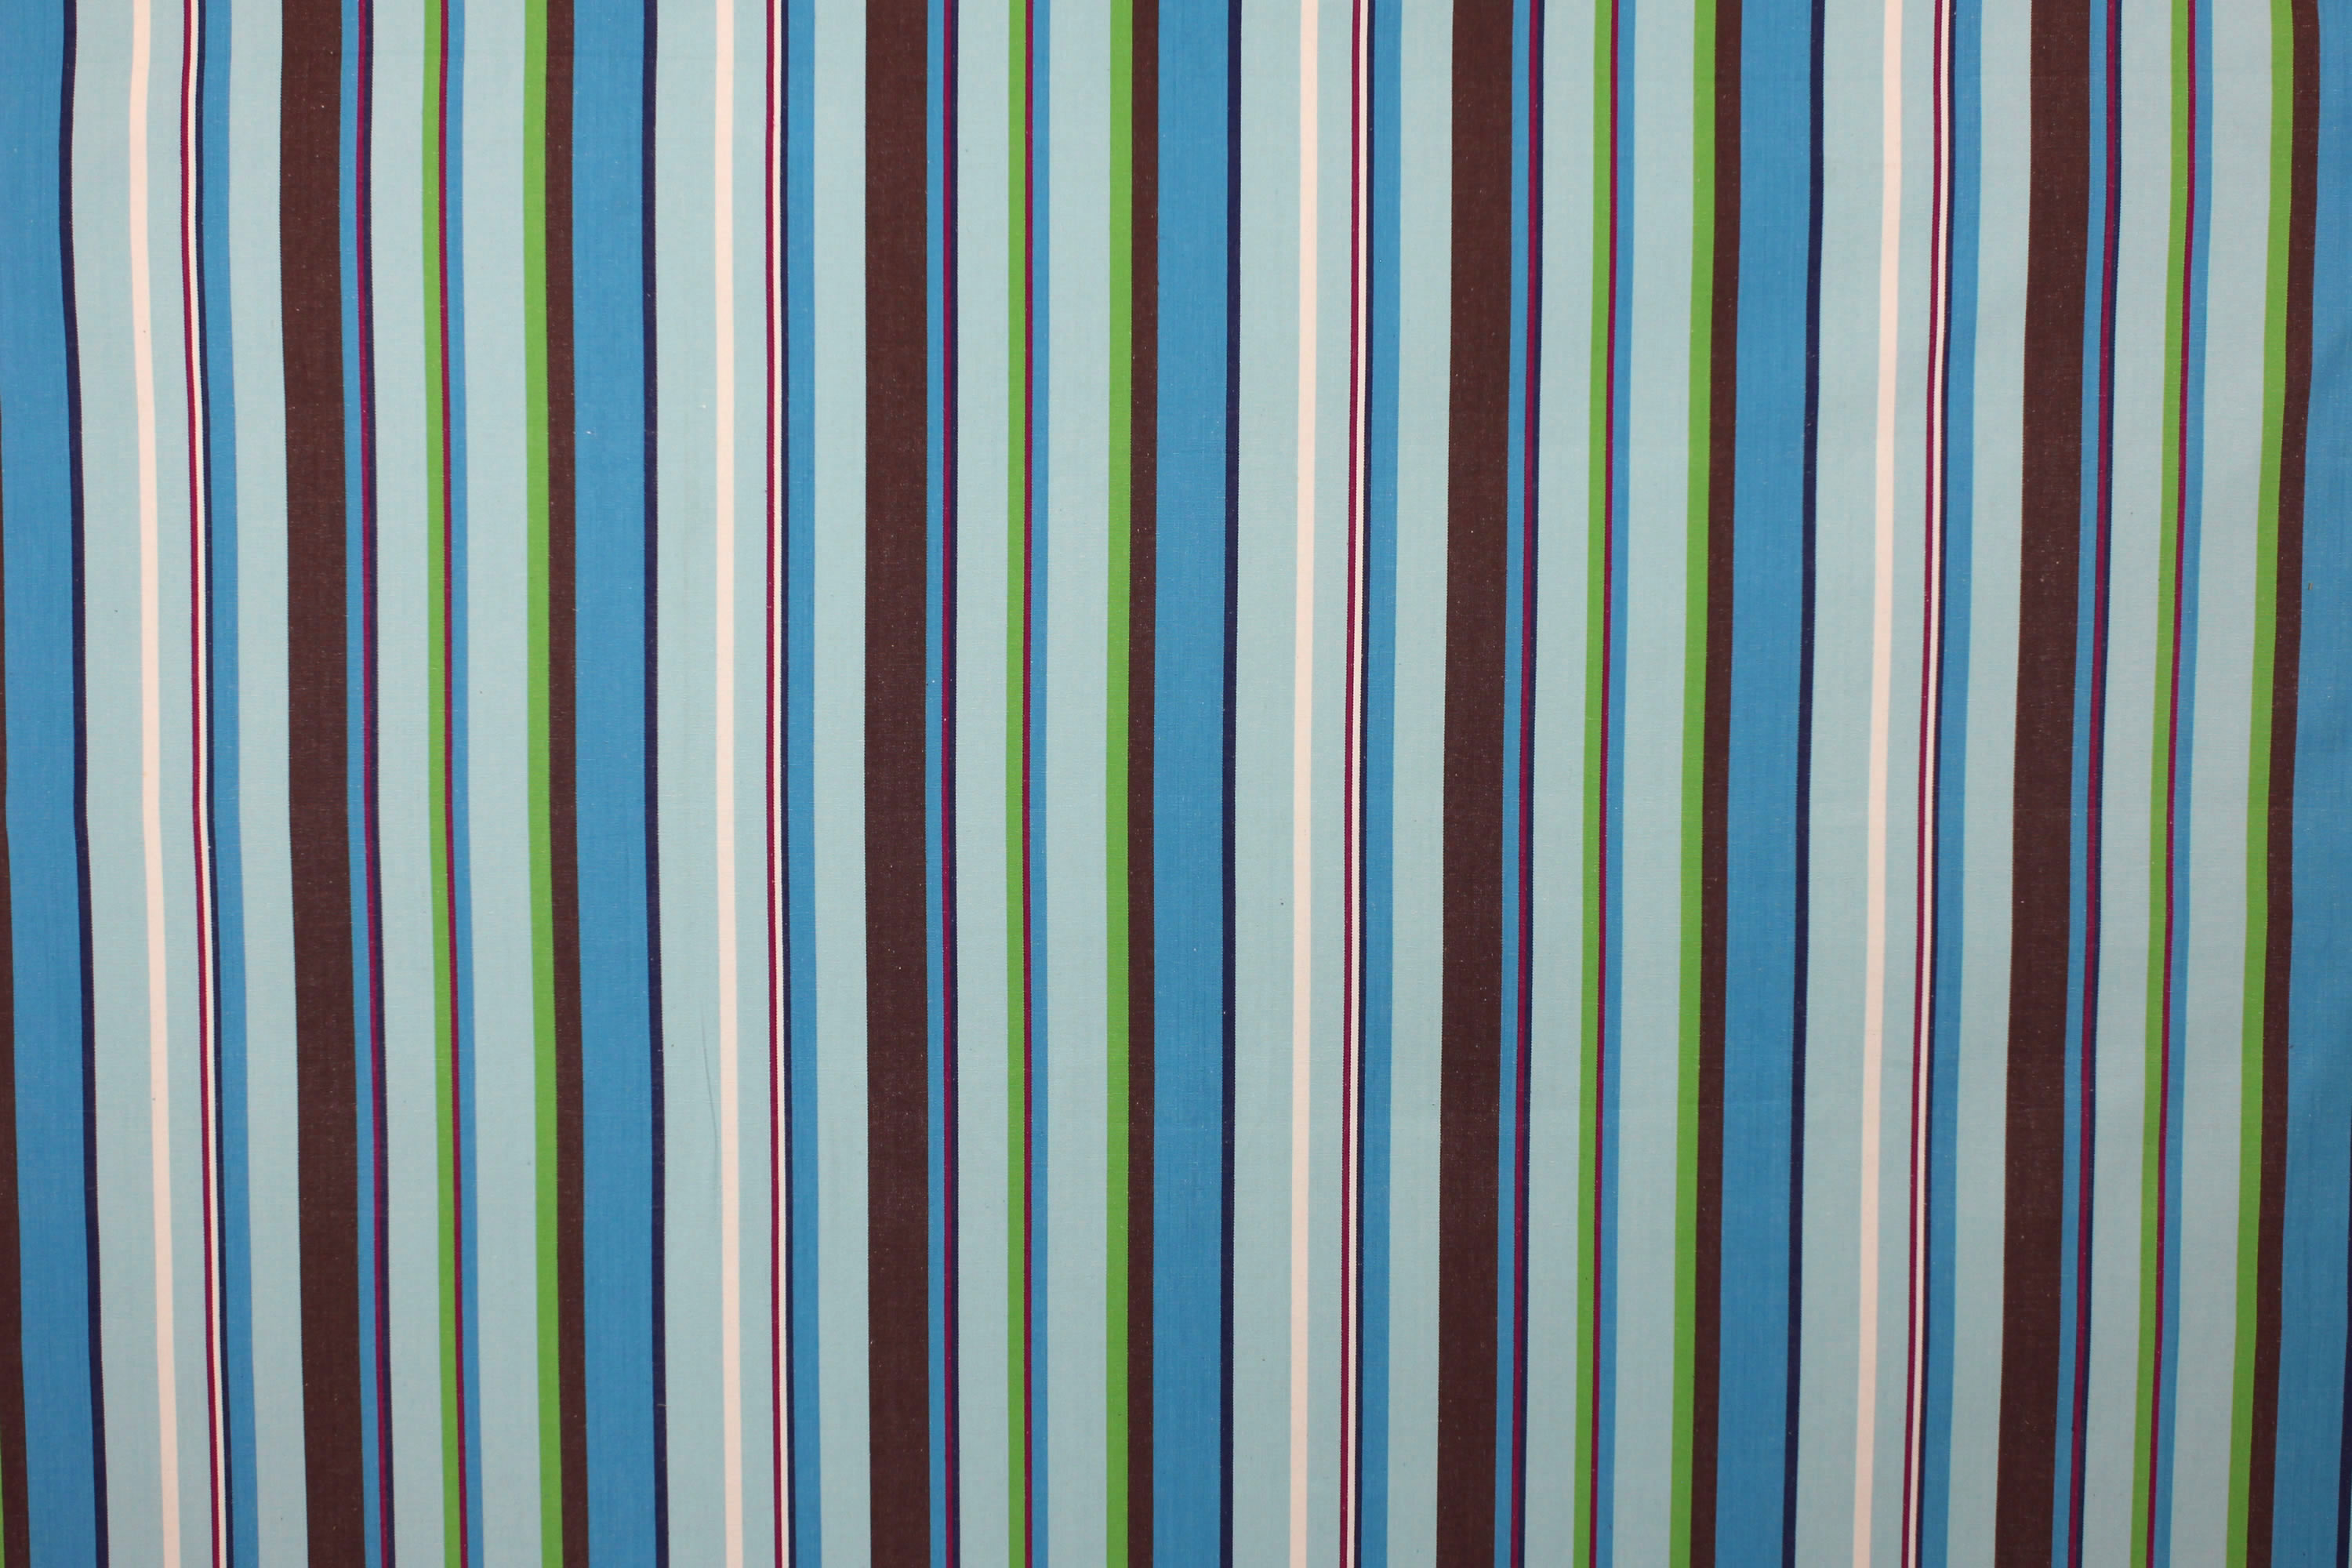 Turquoise Striped Fabrics | Stripe Cotton Fabrics | Striped Curtain Fabrics | Upholstery Fabrics  Windsurfing Stripes